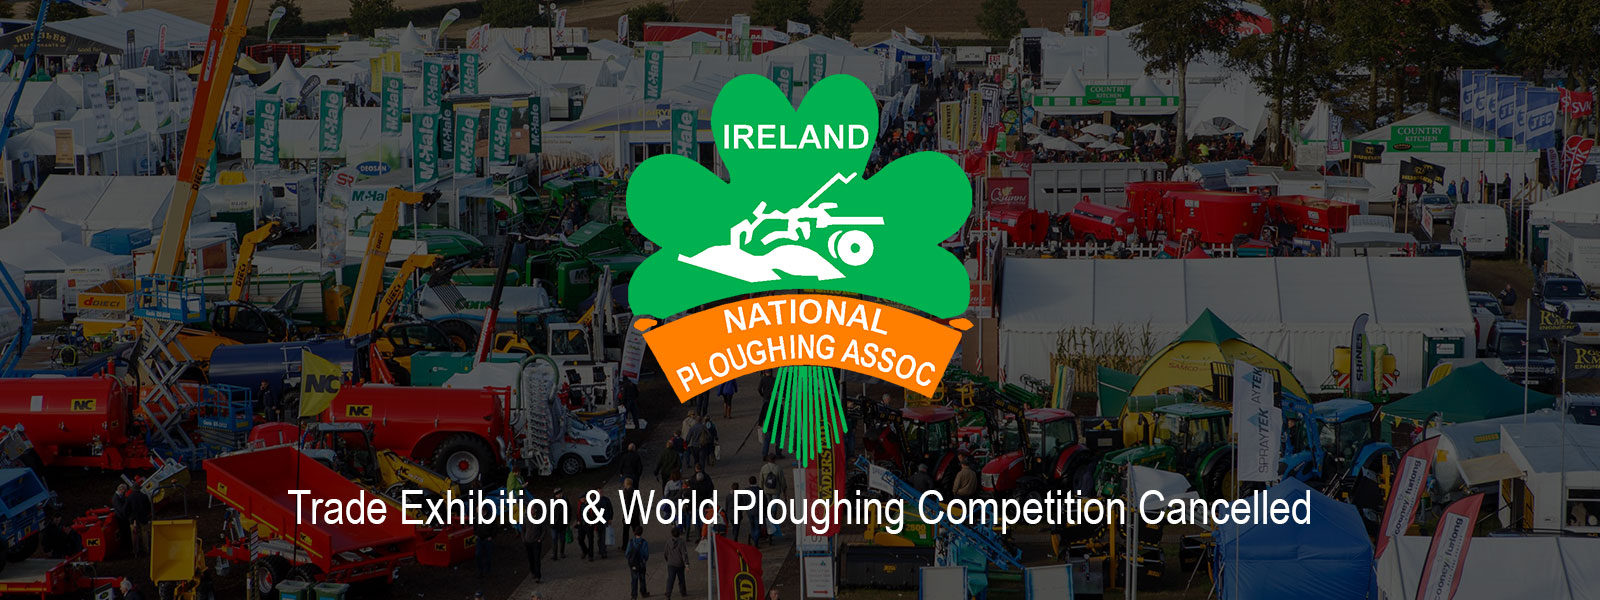 Ploughing Executive Cancel Trade Exhibition & World Ploughing Contest